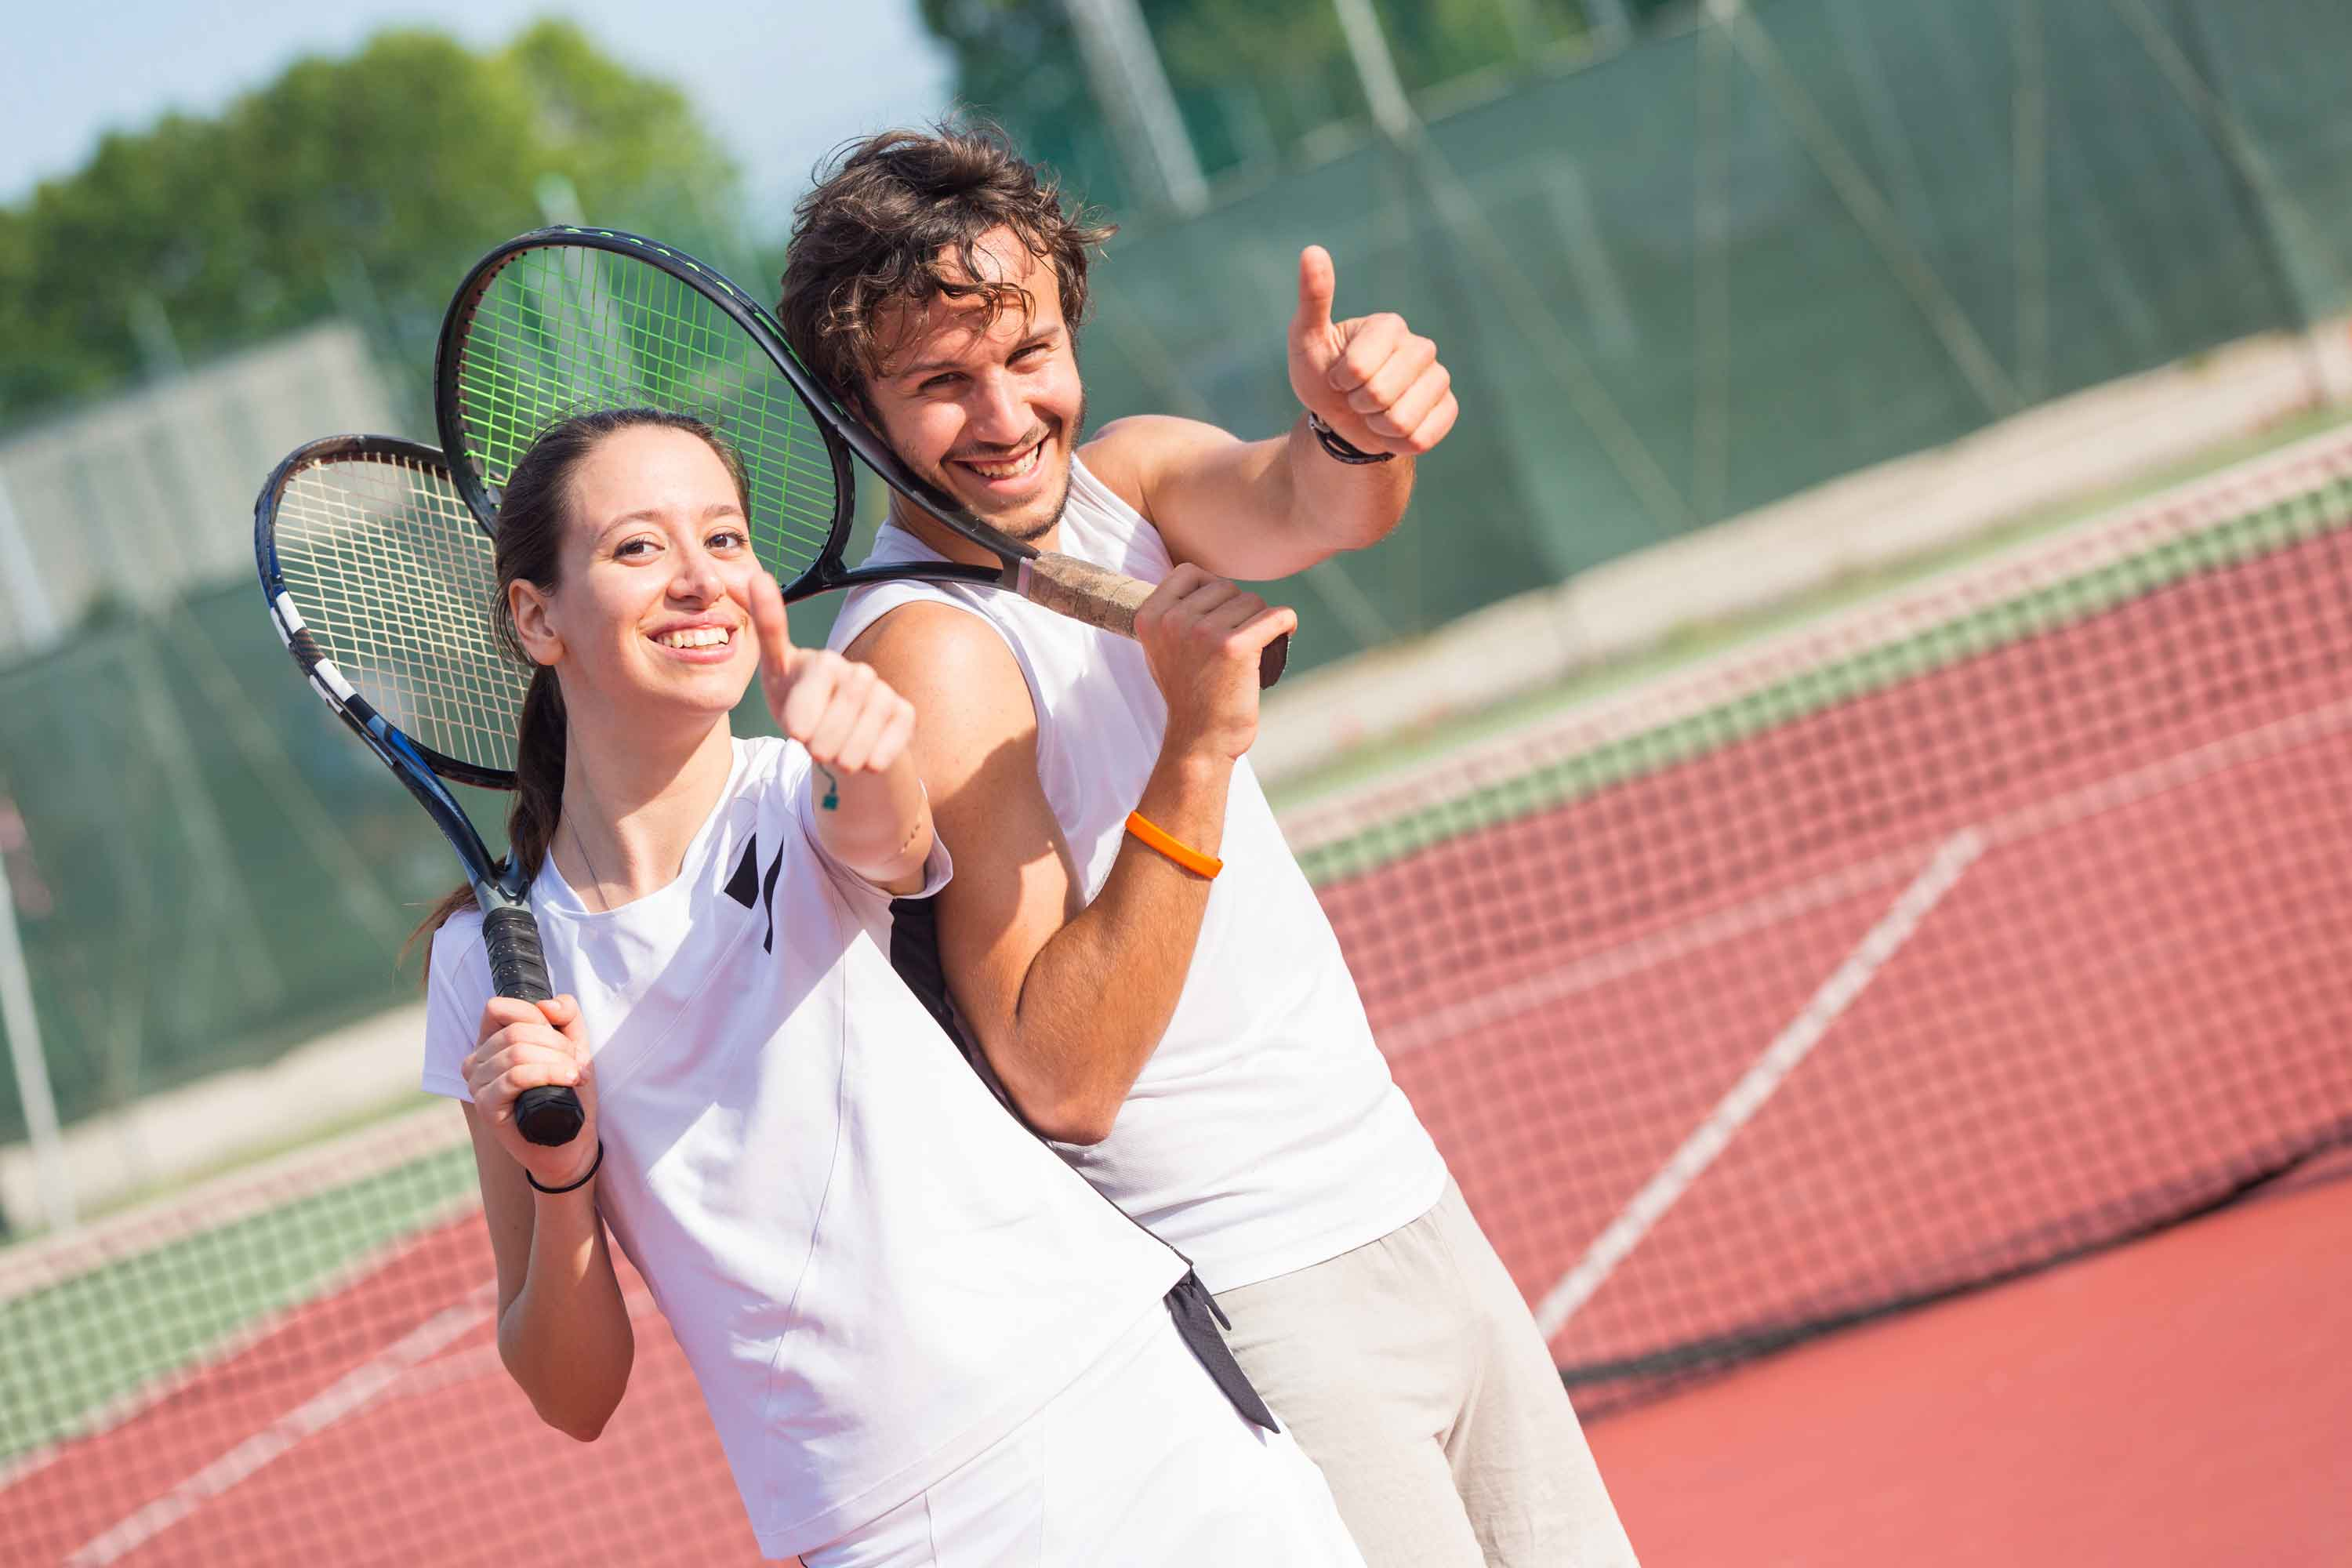 TennisCoach.us – set up a website for a tennis coach easily!